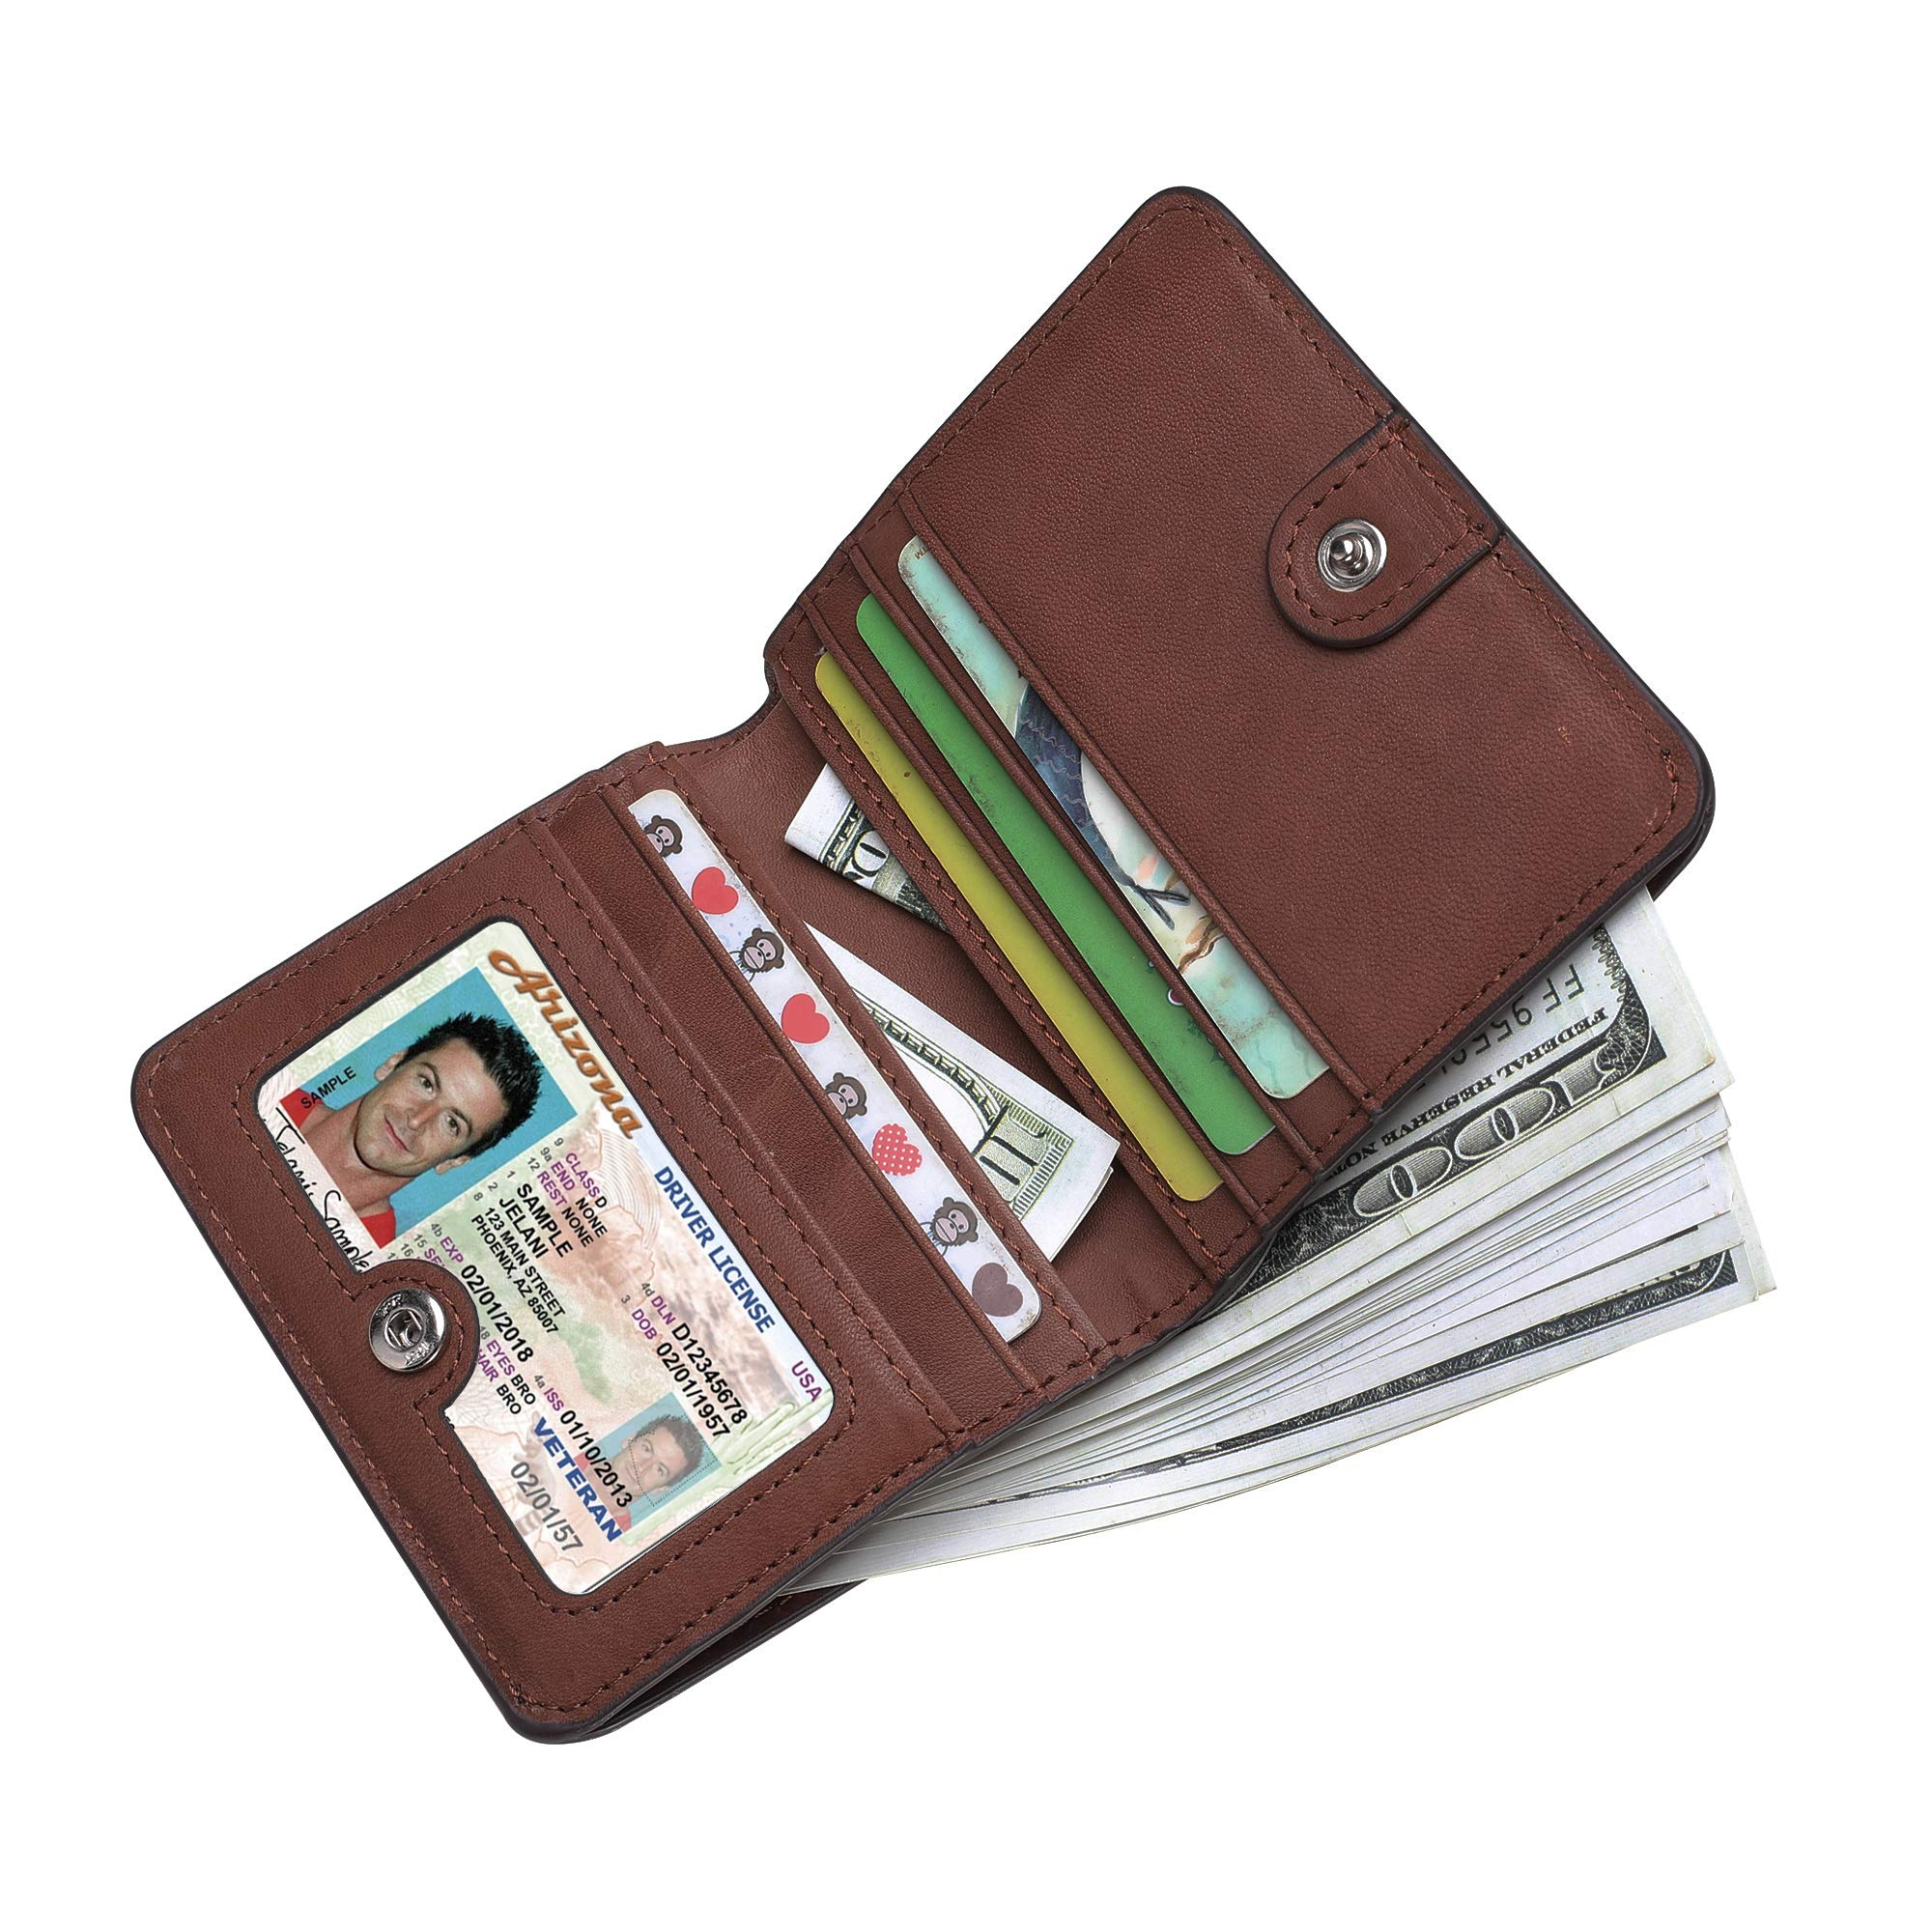 BIG SALE-AINIMOER Women's RFID Blocking Leather Small Compact Bifold Pocket Wallet Ladies Mini Purse with id Window (Vintage Brown) by AINIMOER (Image #7)